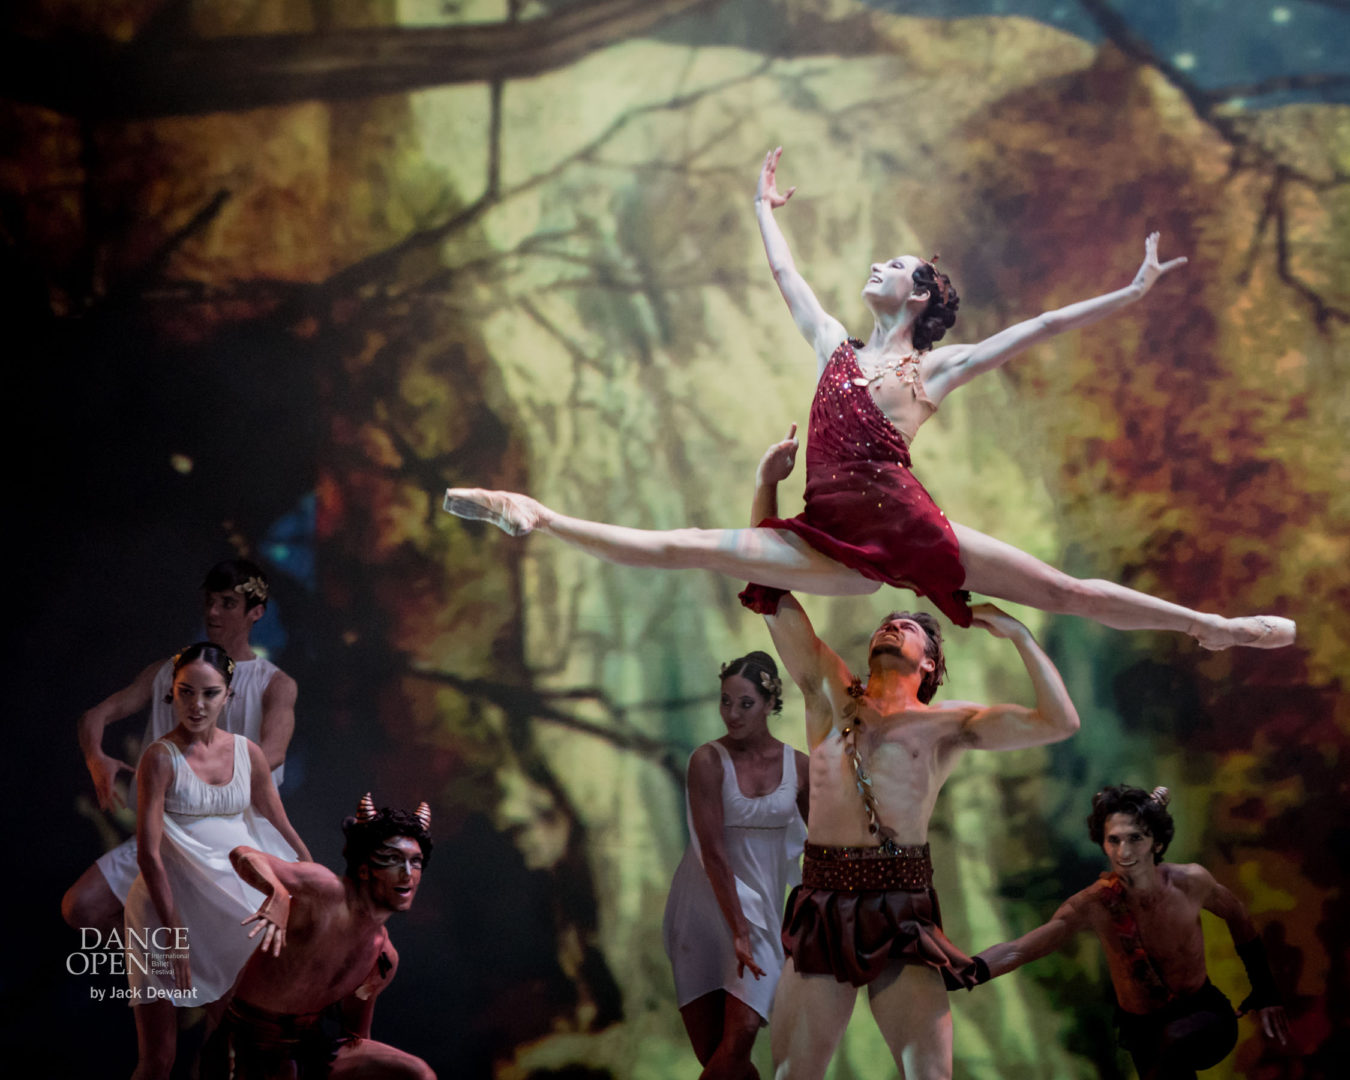 Oksana Skorik, Matthew Golding and Dinu Tamazlacaru in Walpurgis Night from Faust